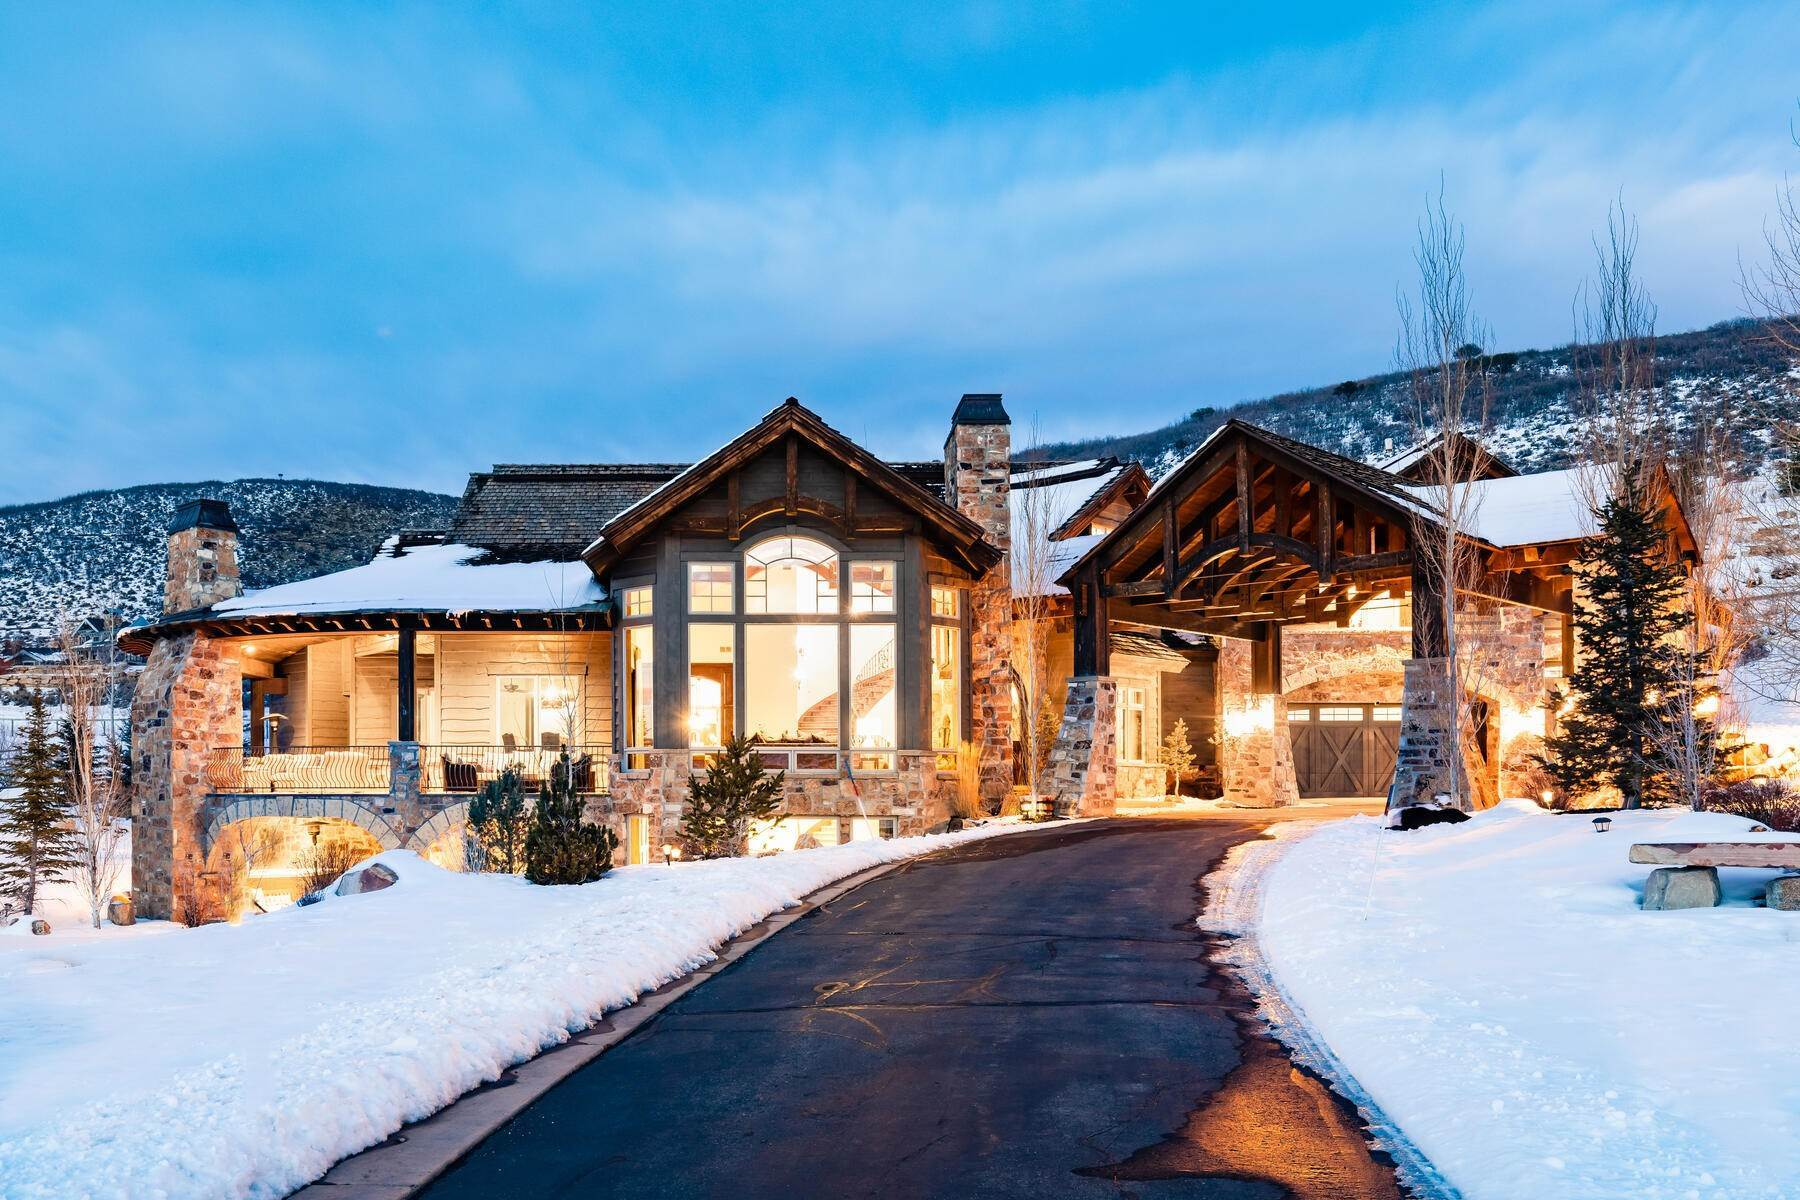 Single Family Homes for Sale at Rare Ranch Creek Estates Home Boasts over 3 Acres with Unparalleled Views 4400 N Ranch Creek Ln Park City, Utah 84098 United States